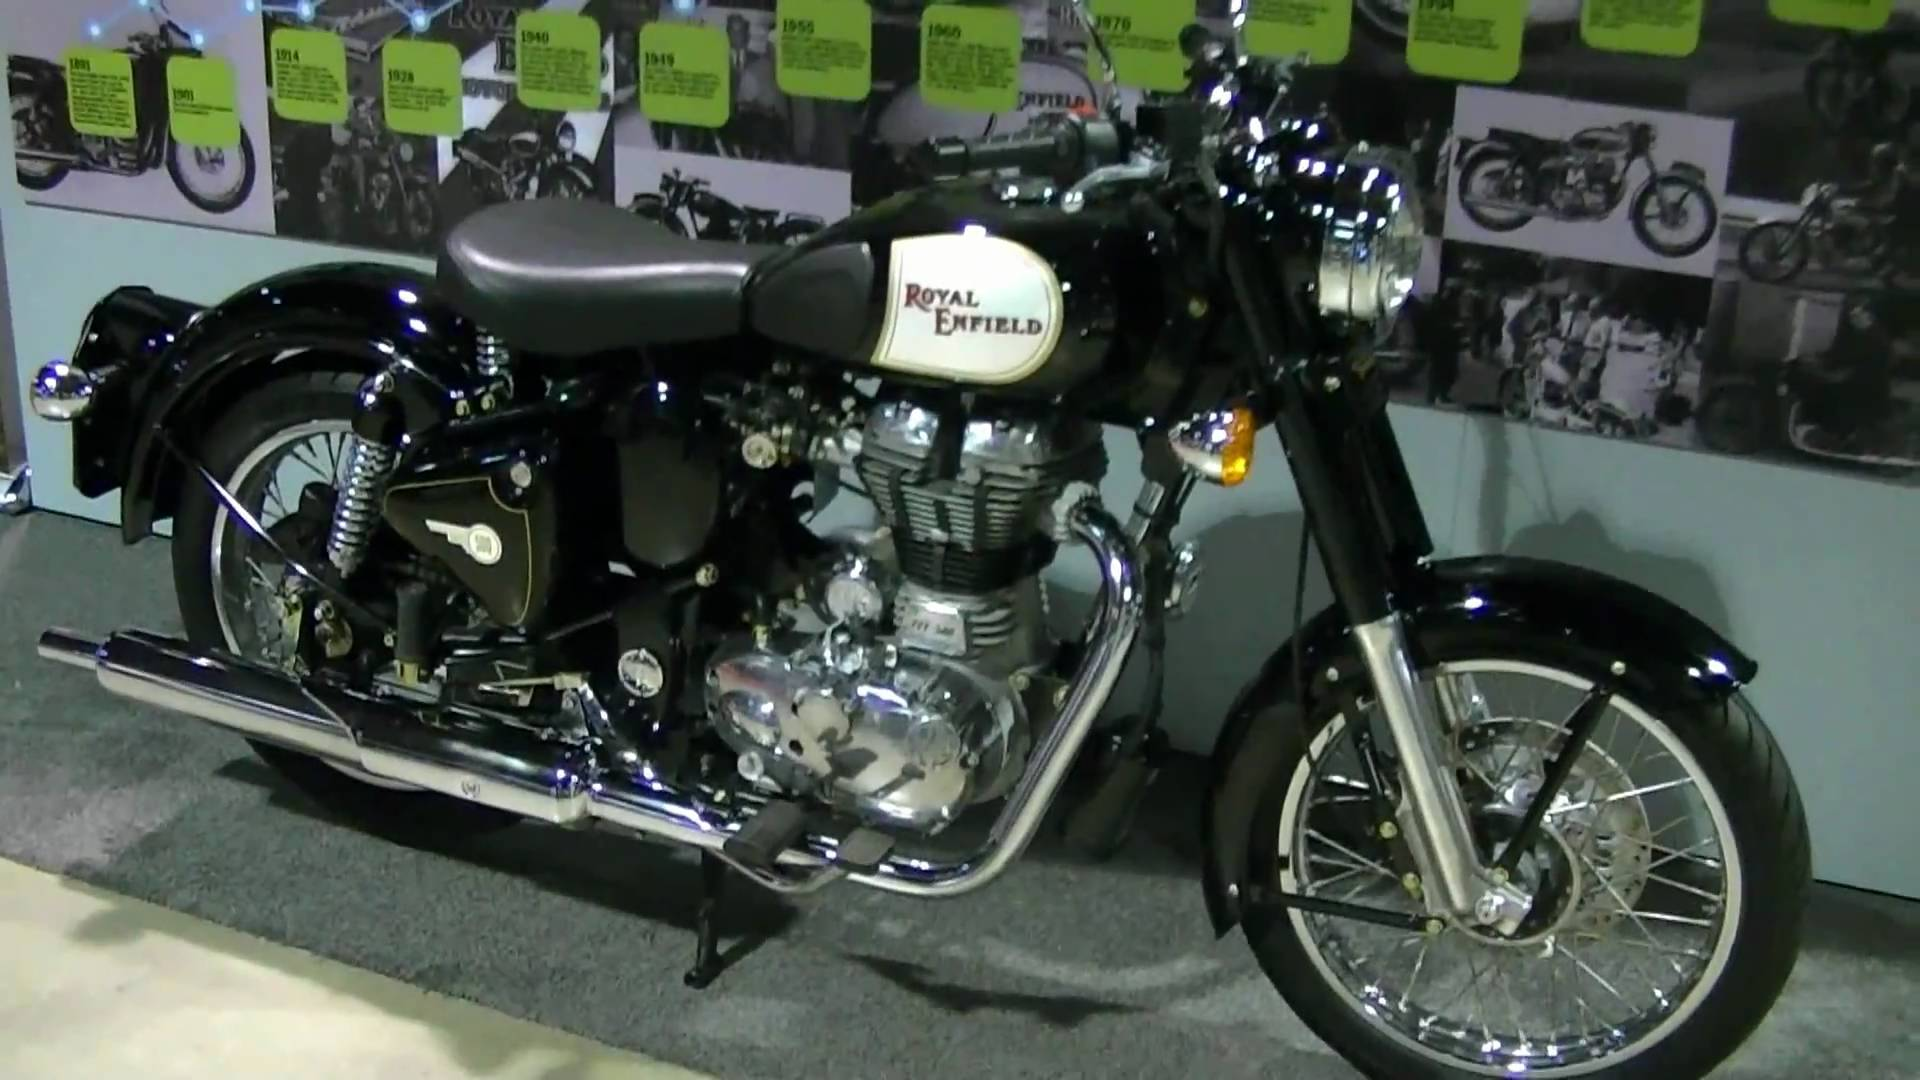 Royal Enfield Bullet 500 Army 2001 images #126025